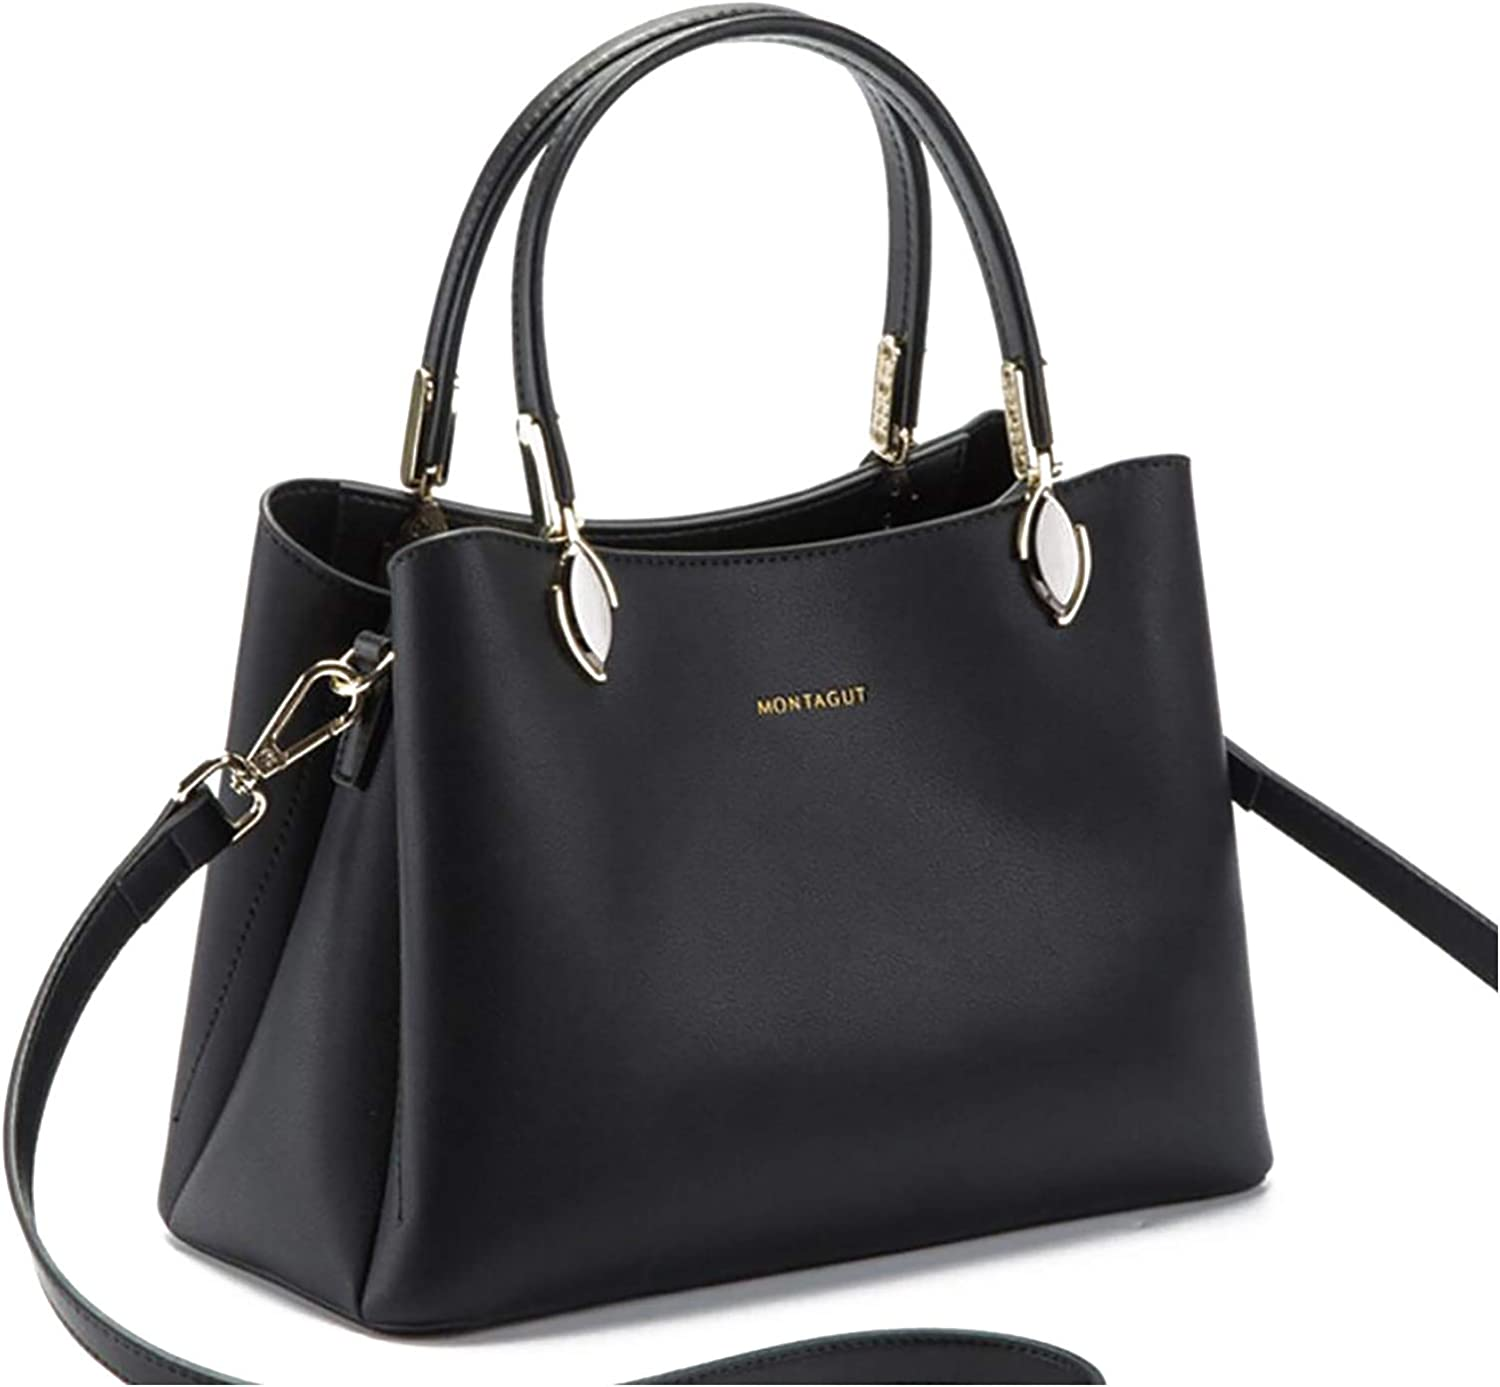 Women's shoulder bags leather women's Max 79% OFF handbags should Credence and